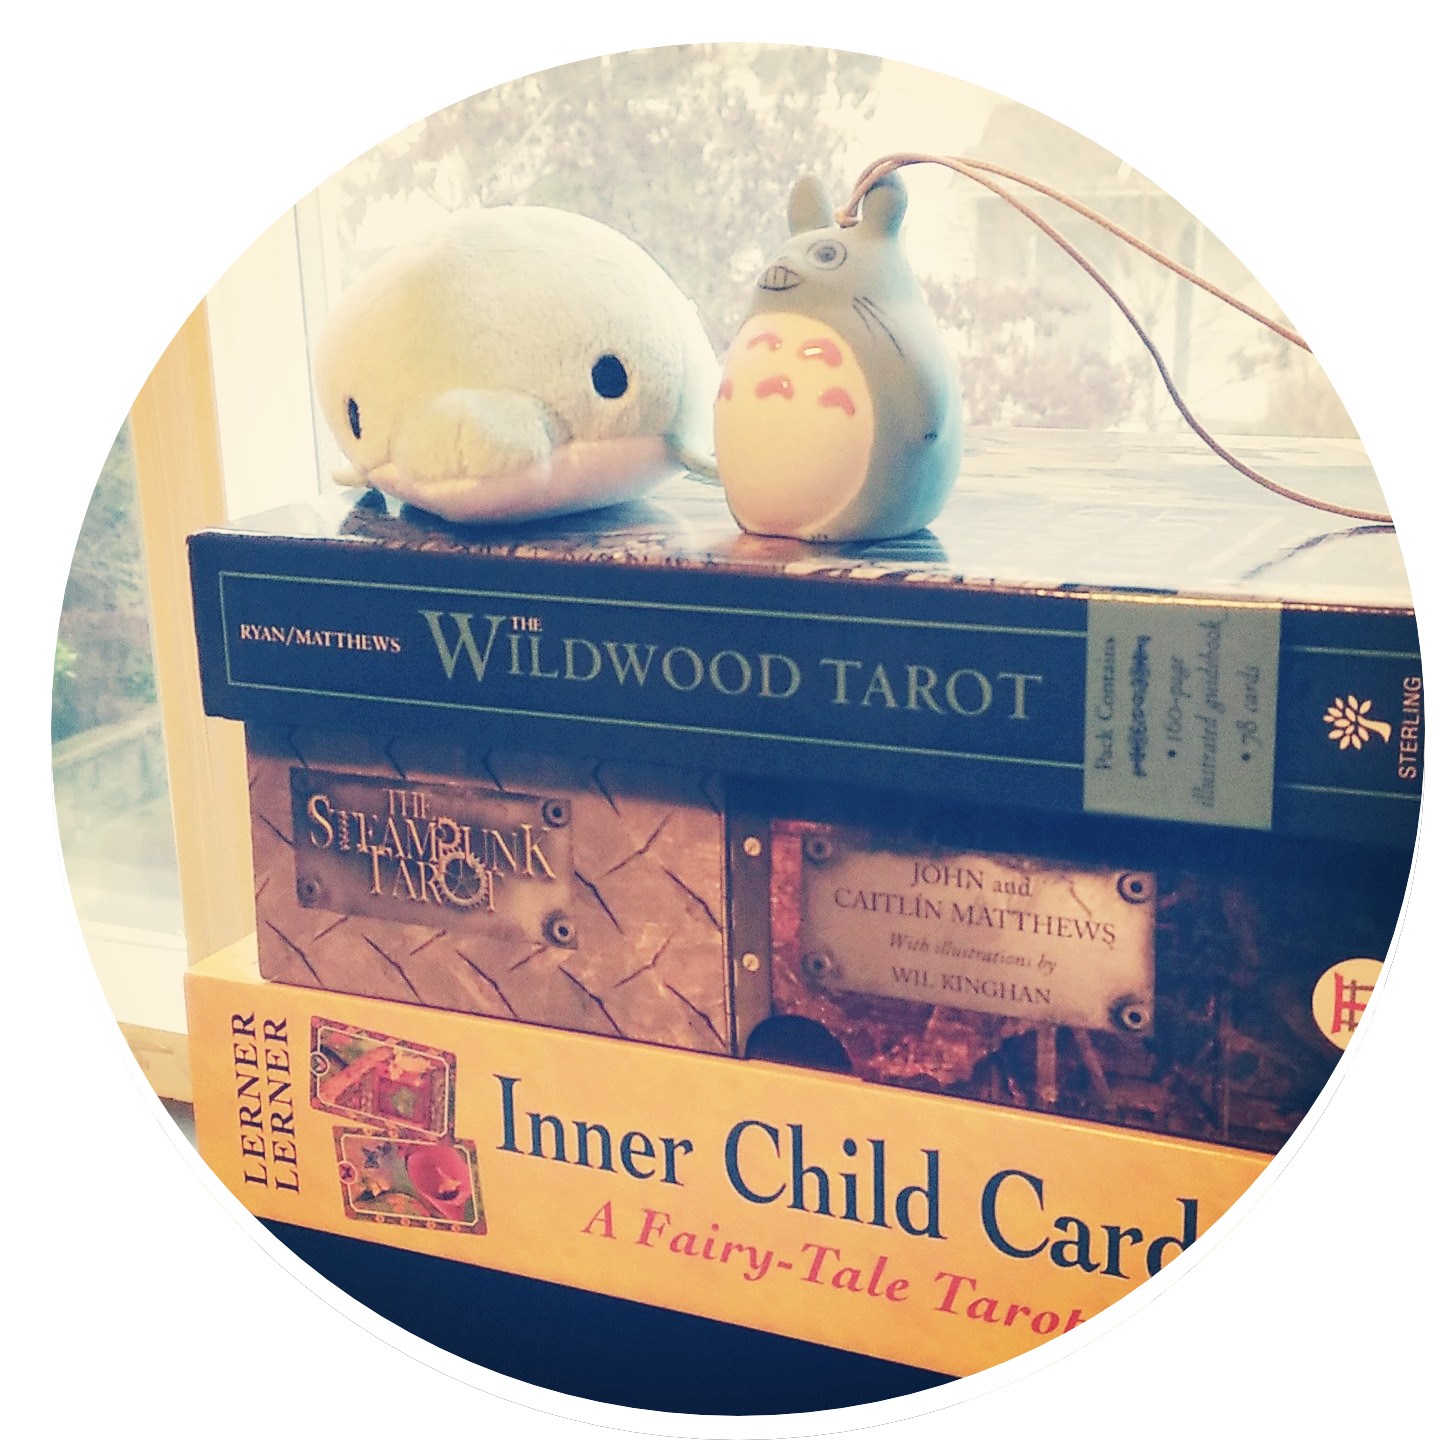 Let me tell you asecret...I never likedreading tarot books either. - Don't get me wrong - I'm not saying that I never read any tarot-related books, or that I absolutely hate them. The books I started out with were integral to my tarot learning and helped me shake off my newbie status. But after a while, I just felt like I was reading the same thing over and over and over. And personally, I have never been interested in the esoteric or witchy side of tarot, so a lot of the information out there didn't seem like they were for me.